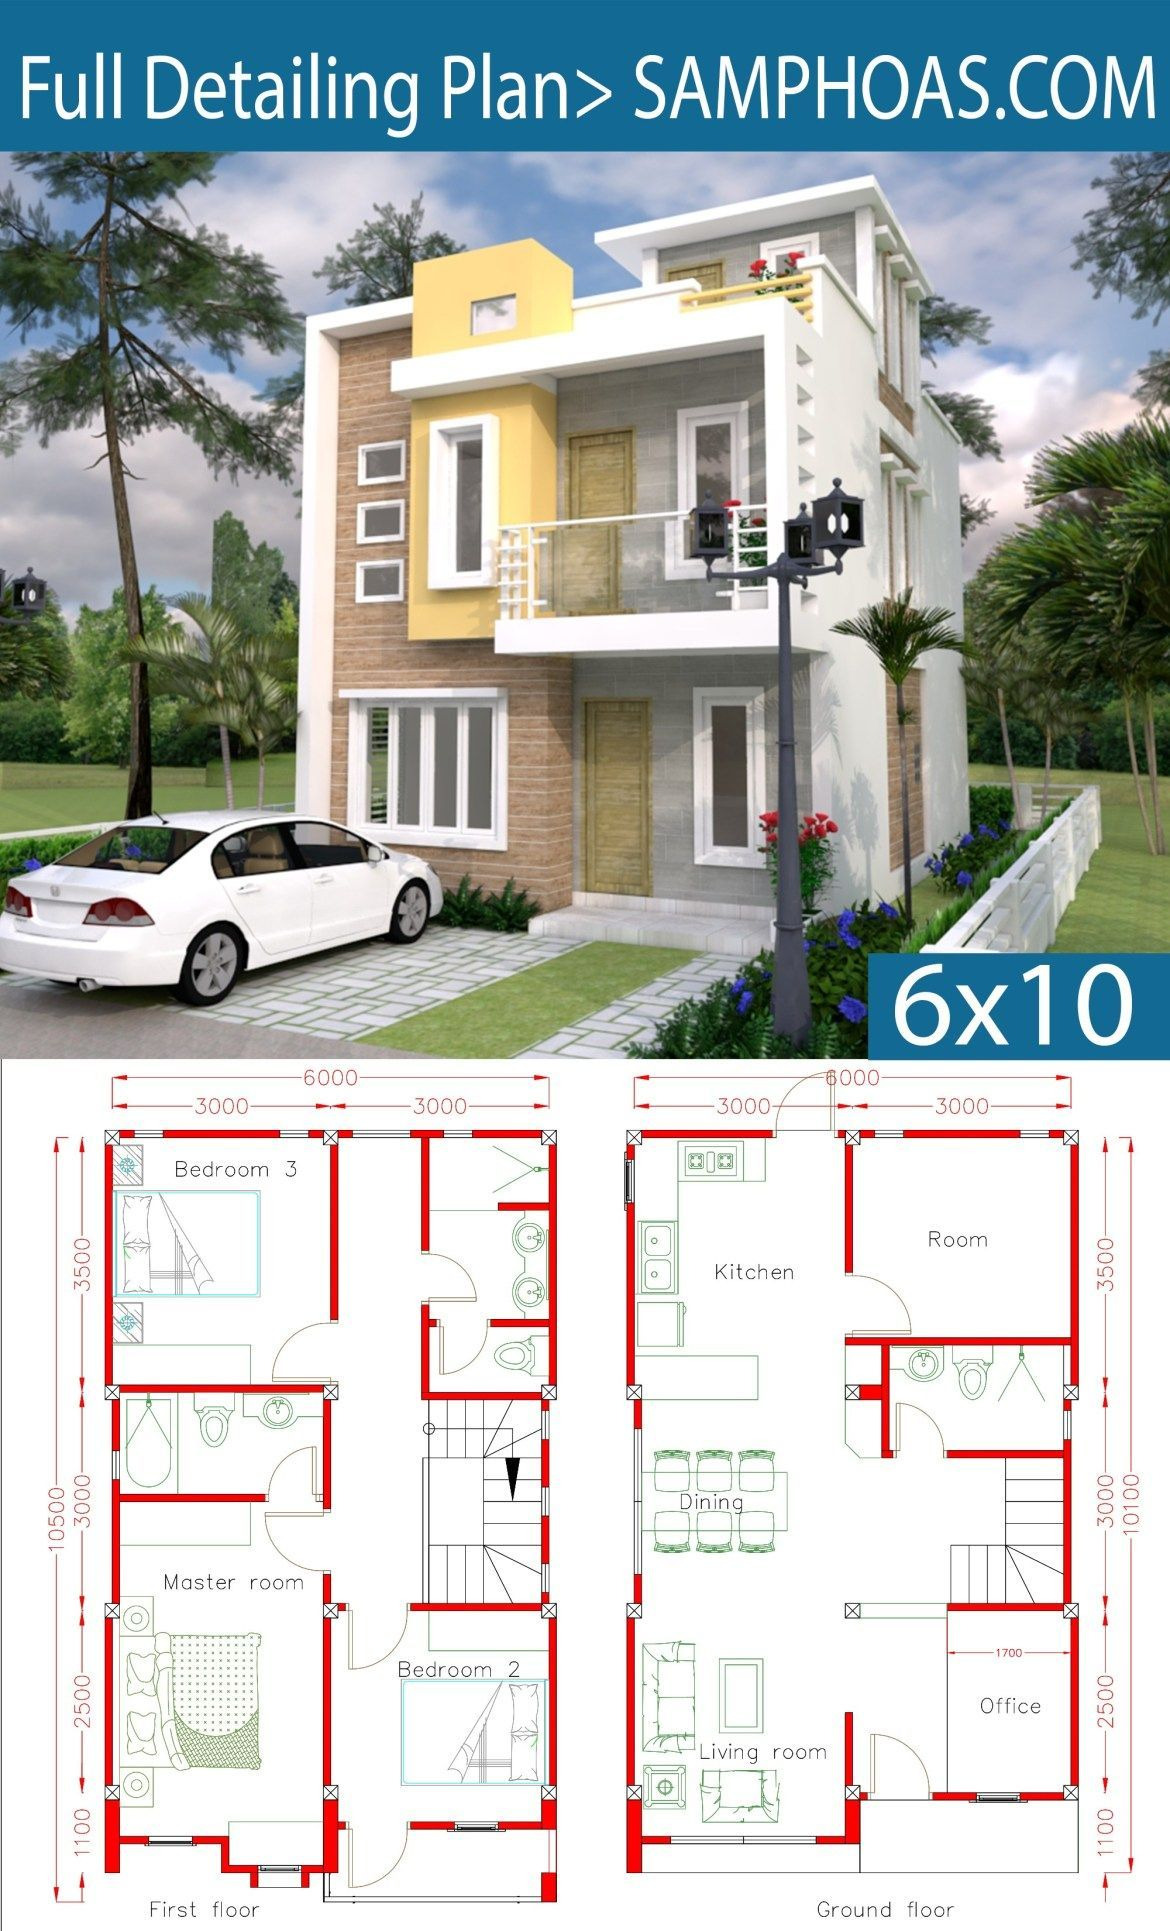 Costa Rica House Plans Lovely Sketchup Home Design Plan 6x10m with 4 Rooms Casaspequeñas